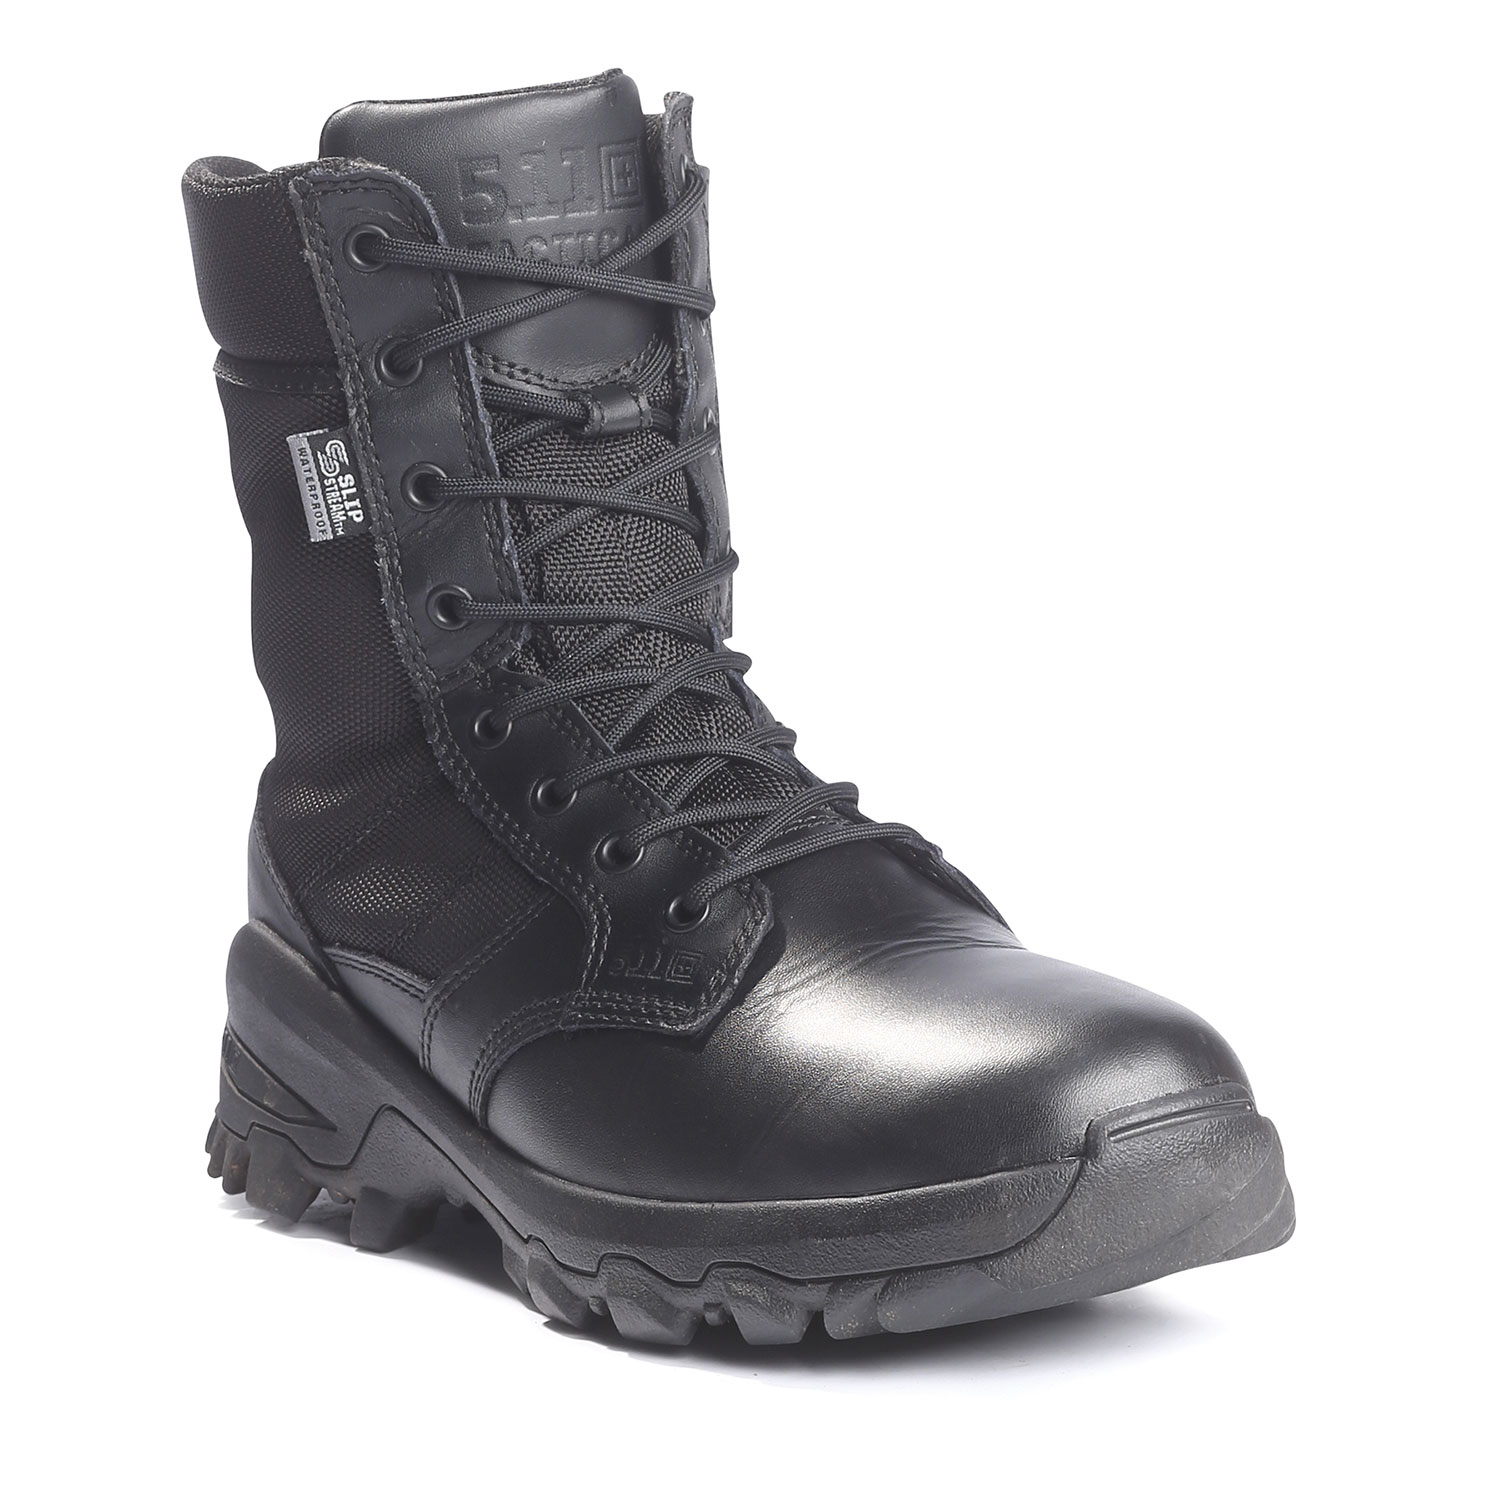 5.11 Tactical Speed 3.0 Waterproof Boots